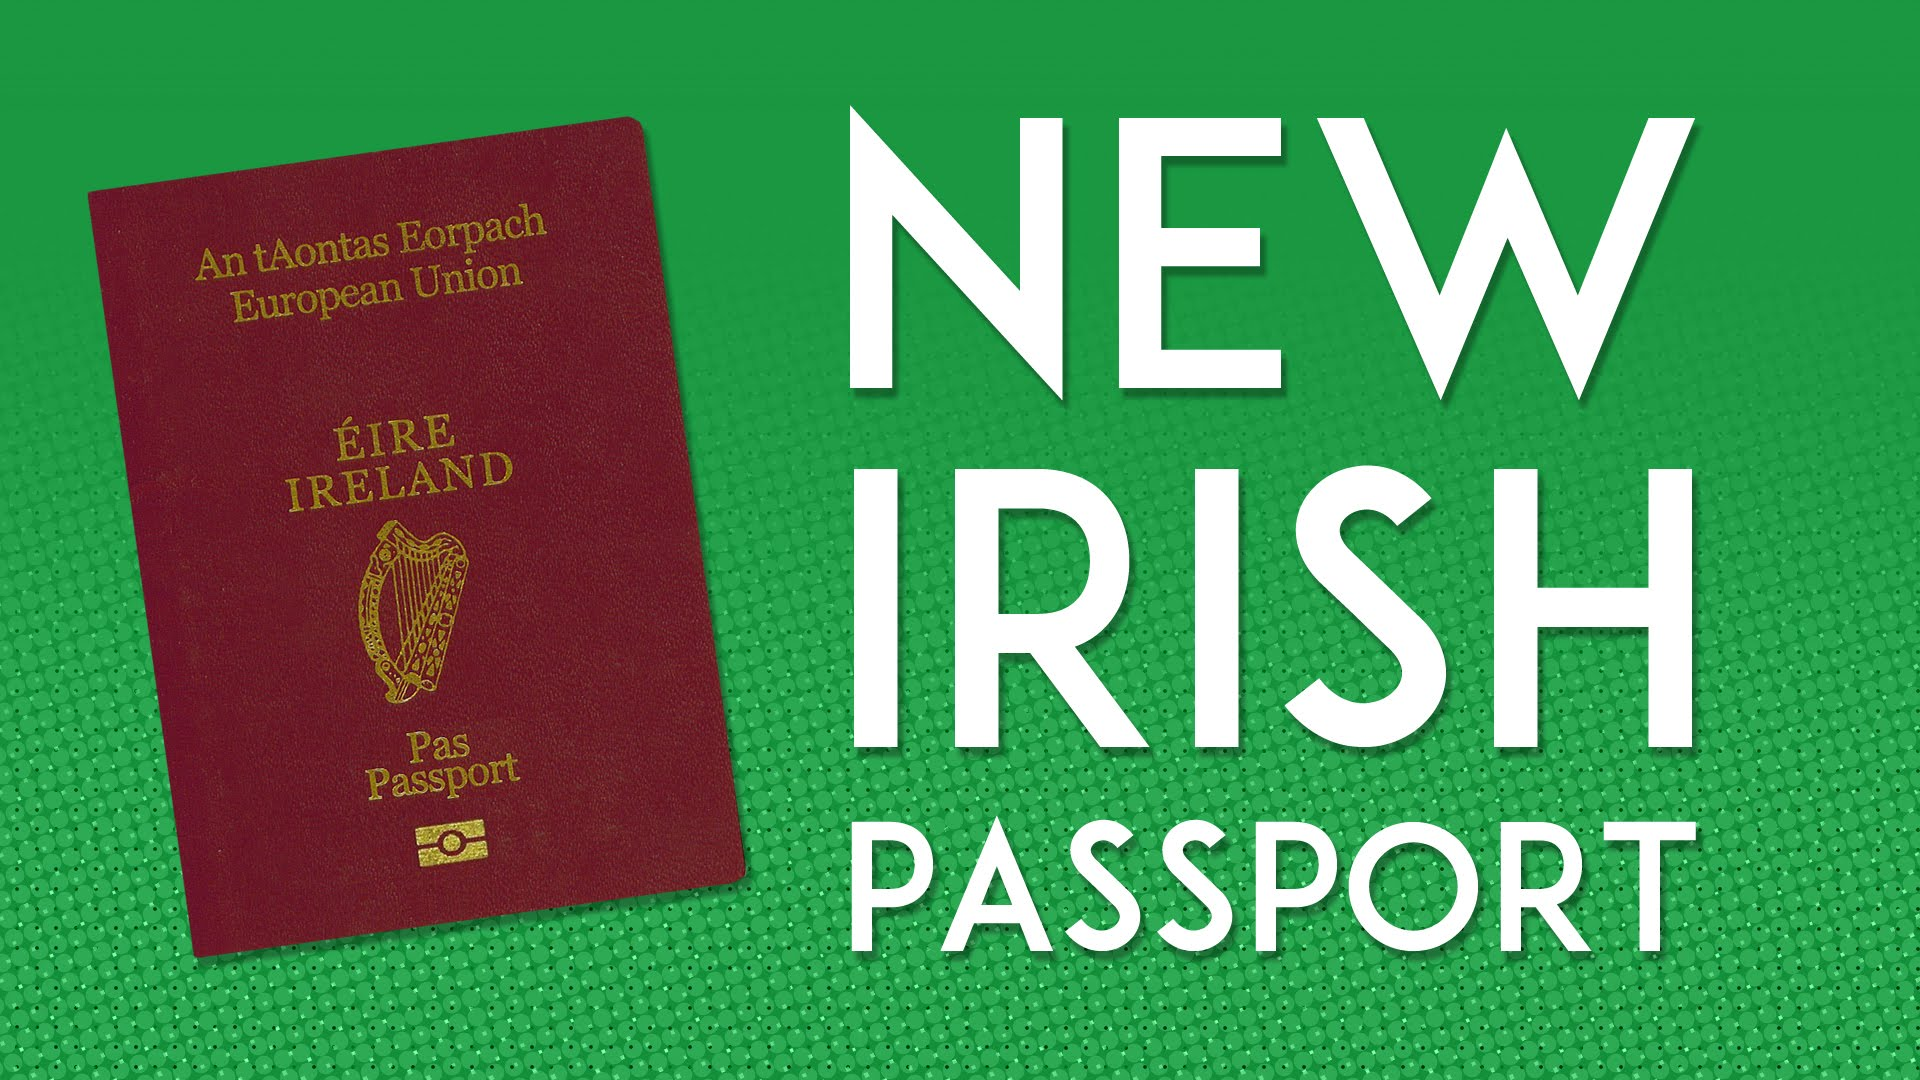 Irish newfoundland association introduction of new online introduction of new online passport renewal service for adult applicants falaconquin